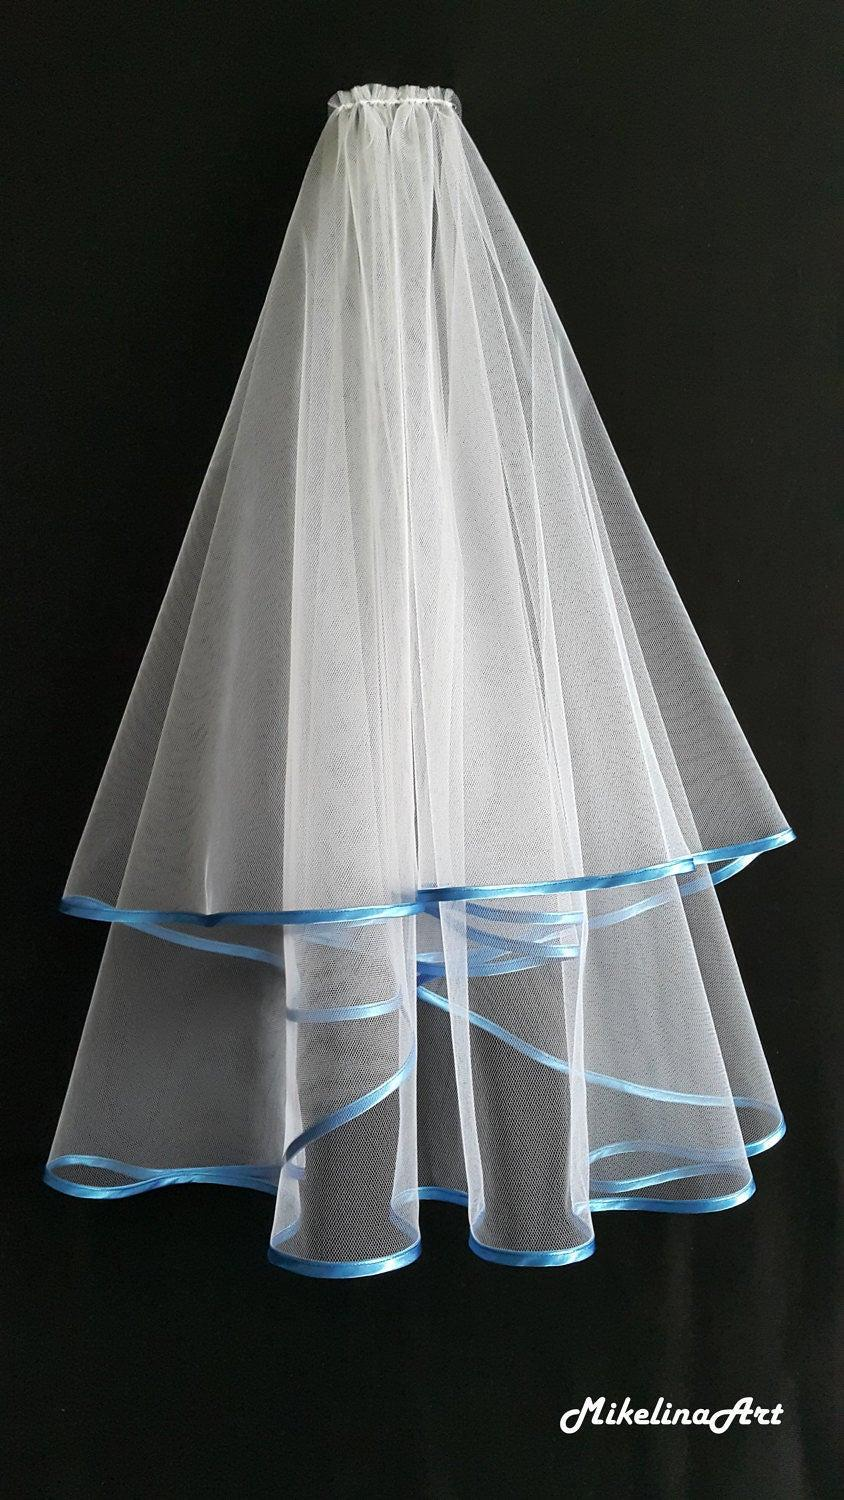 Hochzeit - White Wedding Veil, Two Layers, Riverside Blue Colour Satin Edging.